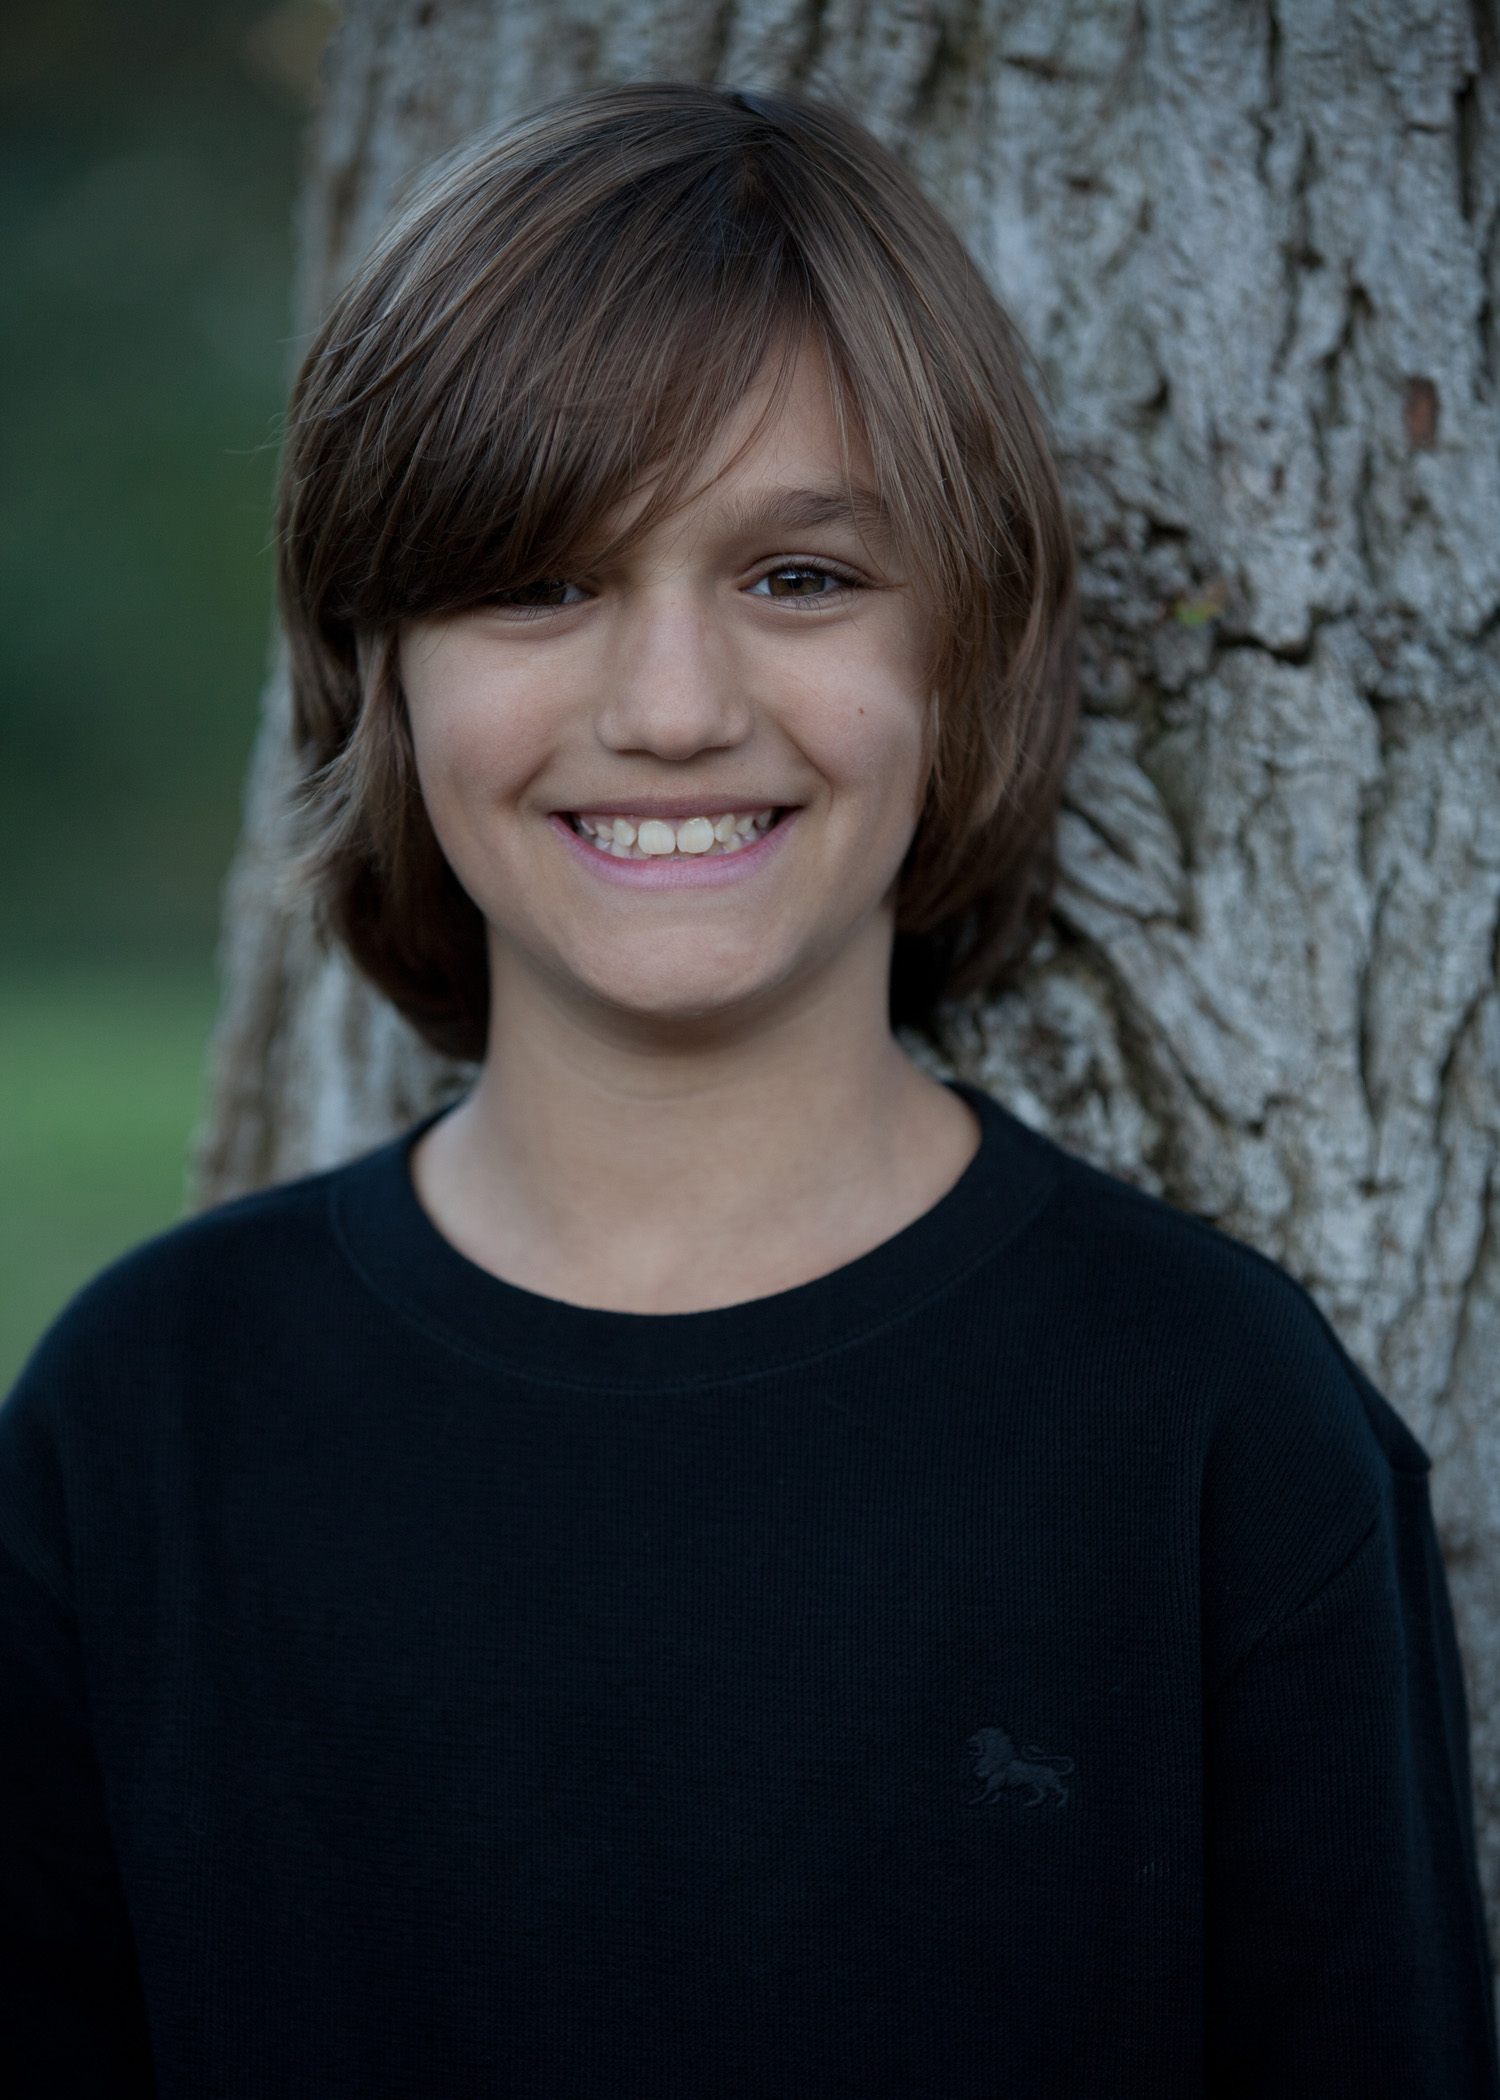 portrait young boy black shirt tree backdrop brown hair smiling